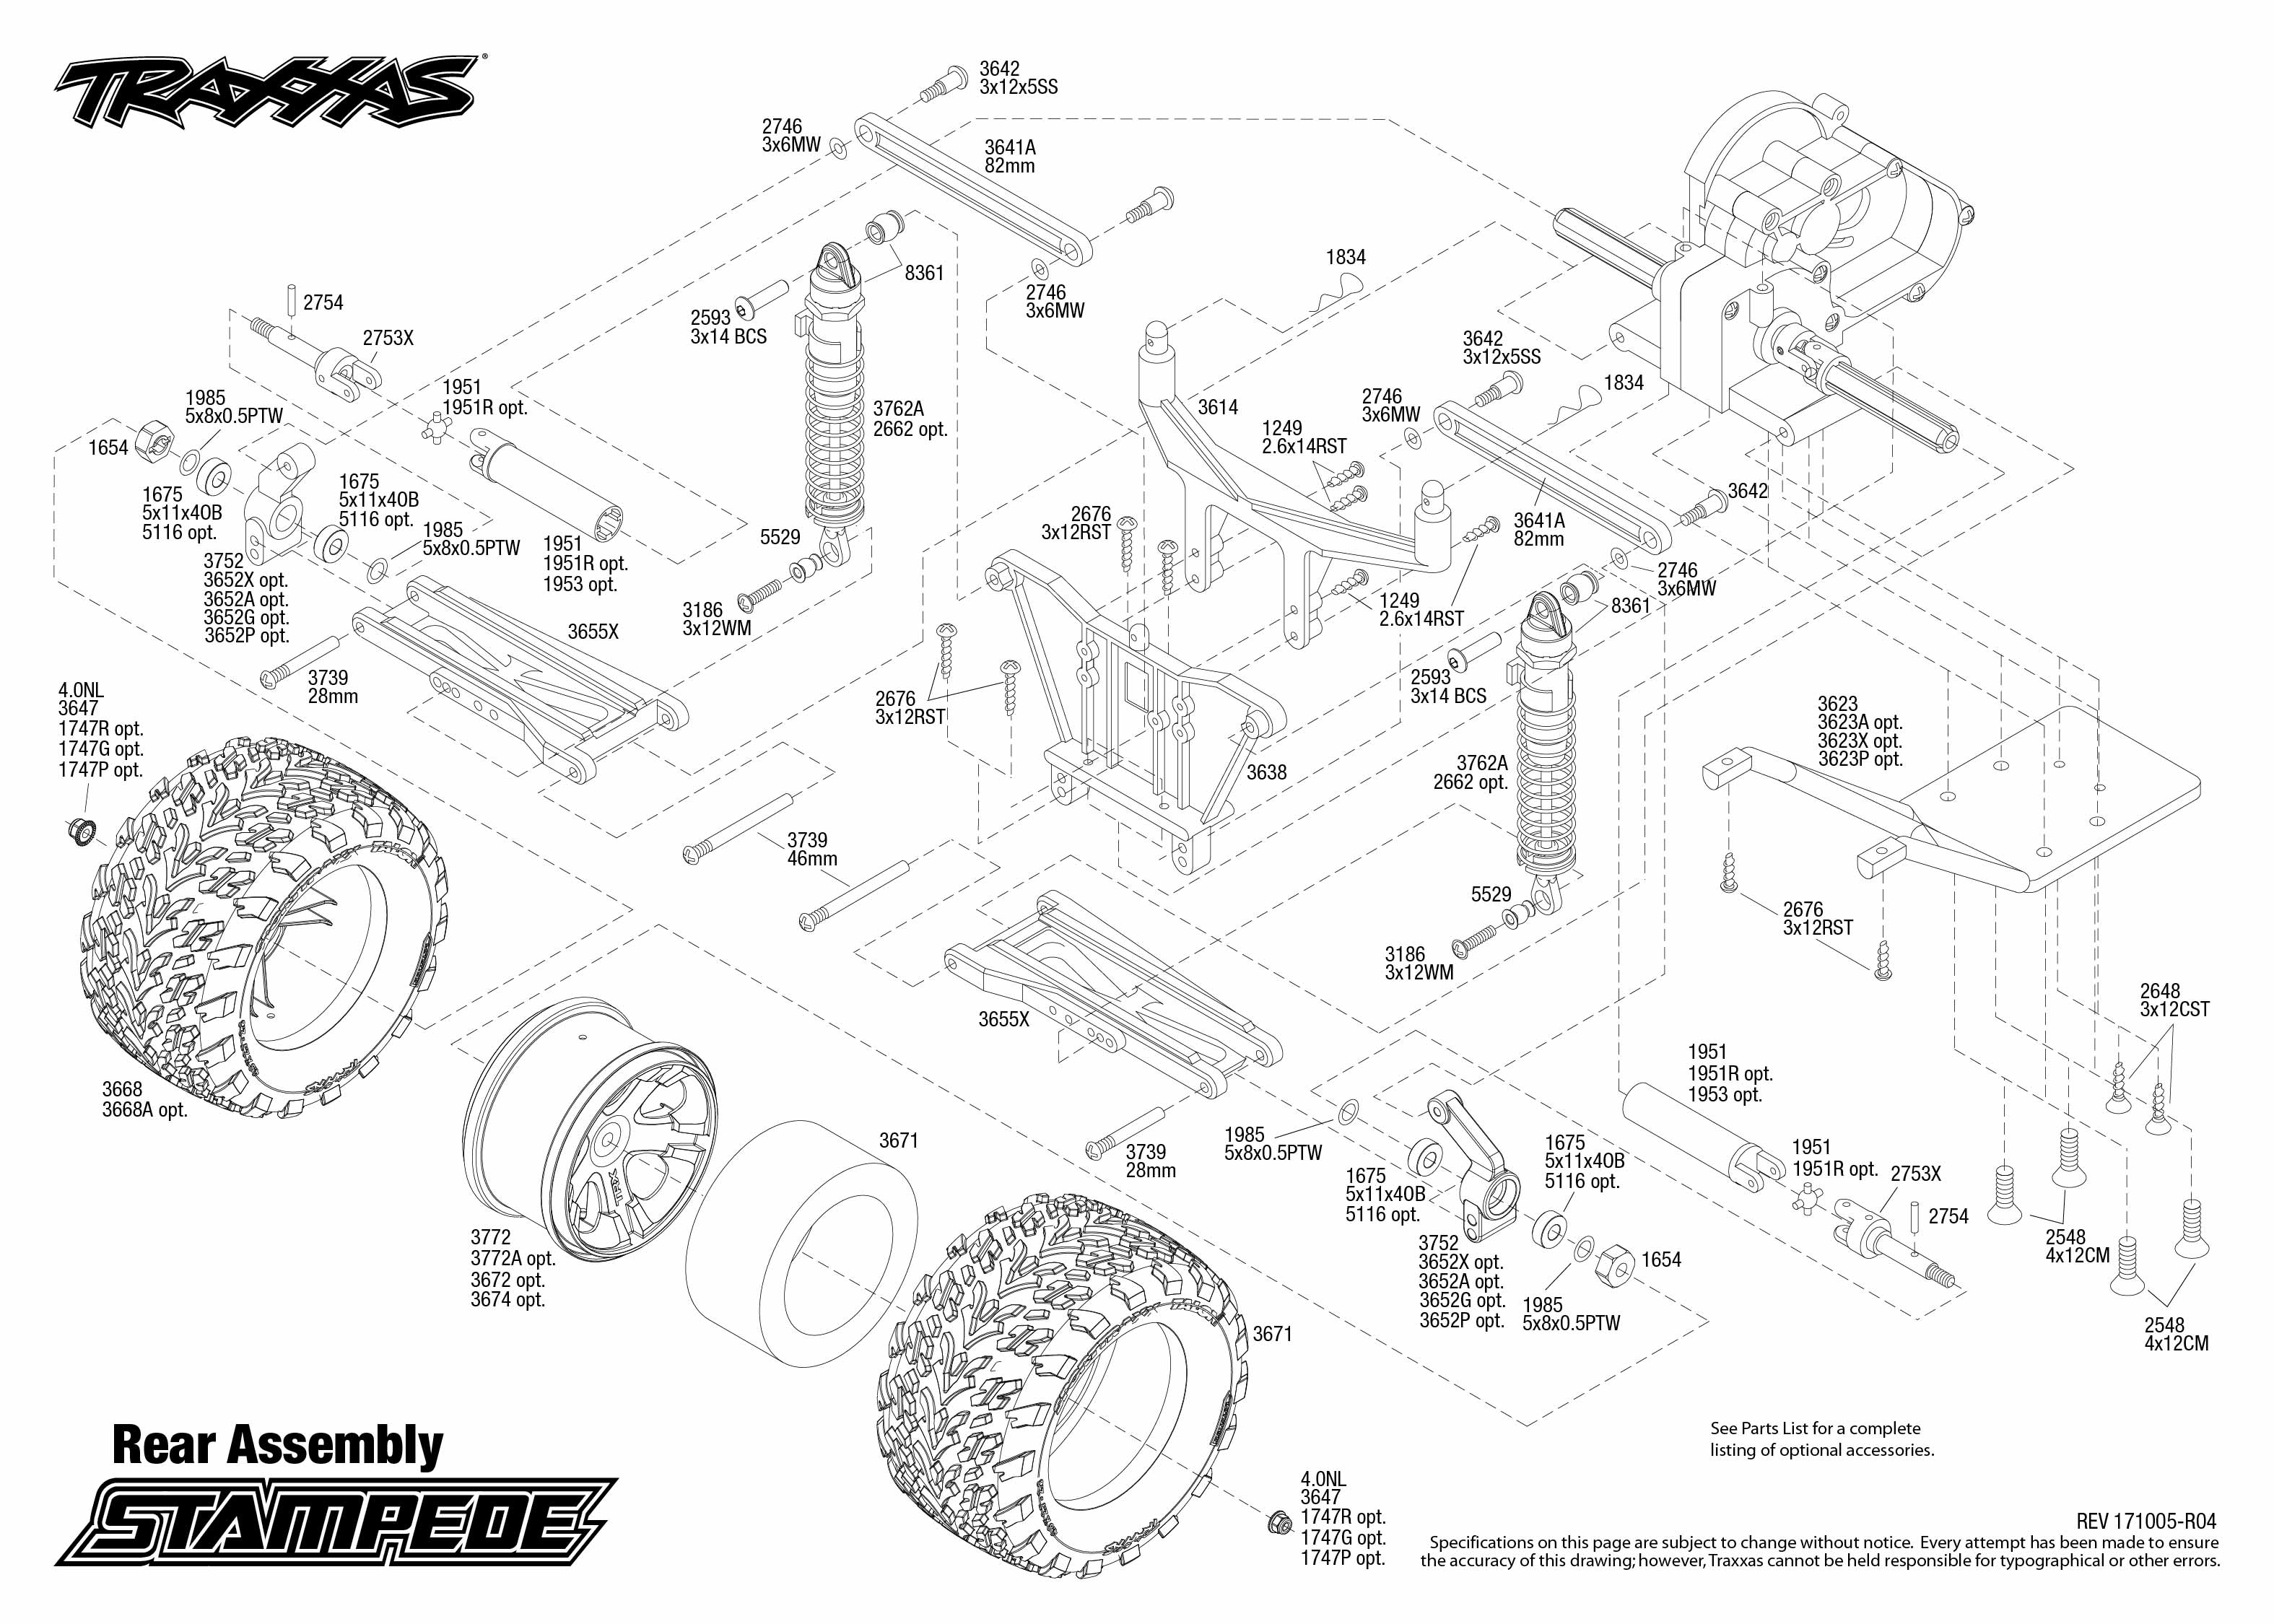 Stampede 36054 1 Rear Assembly Exploded View Traxxas